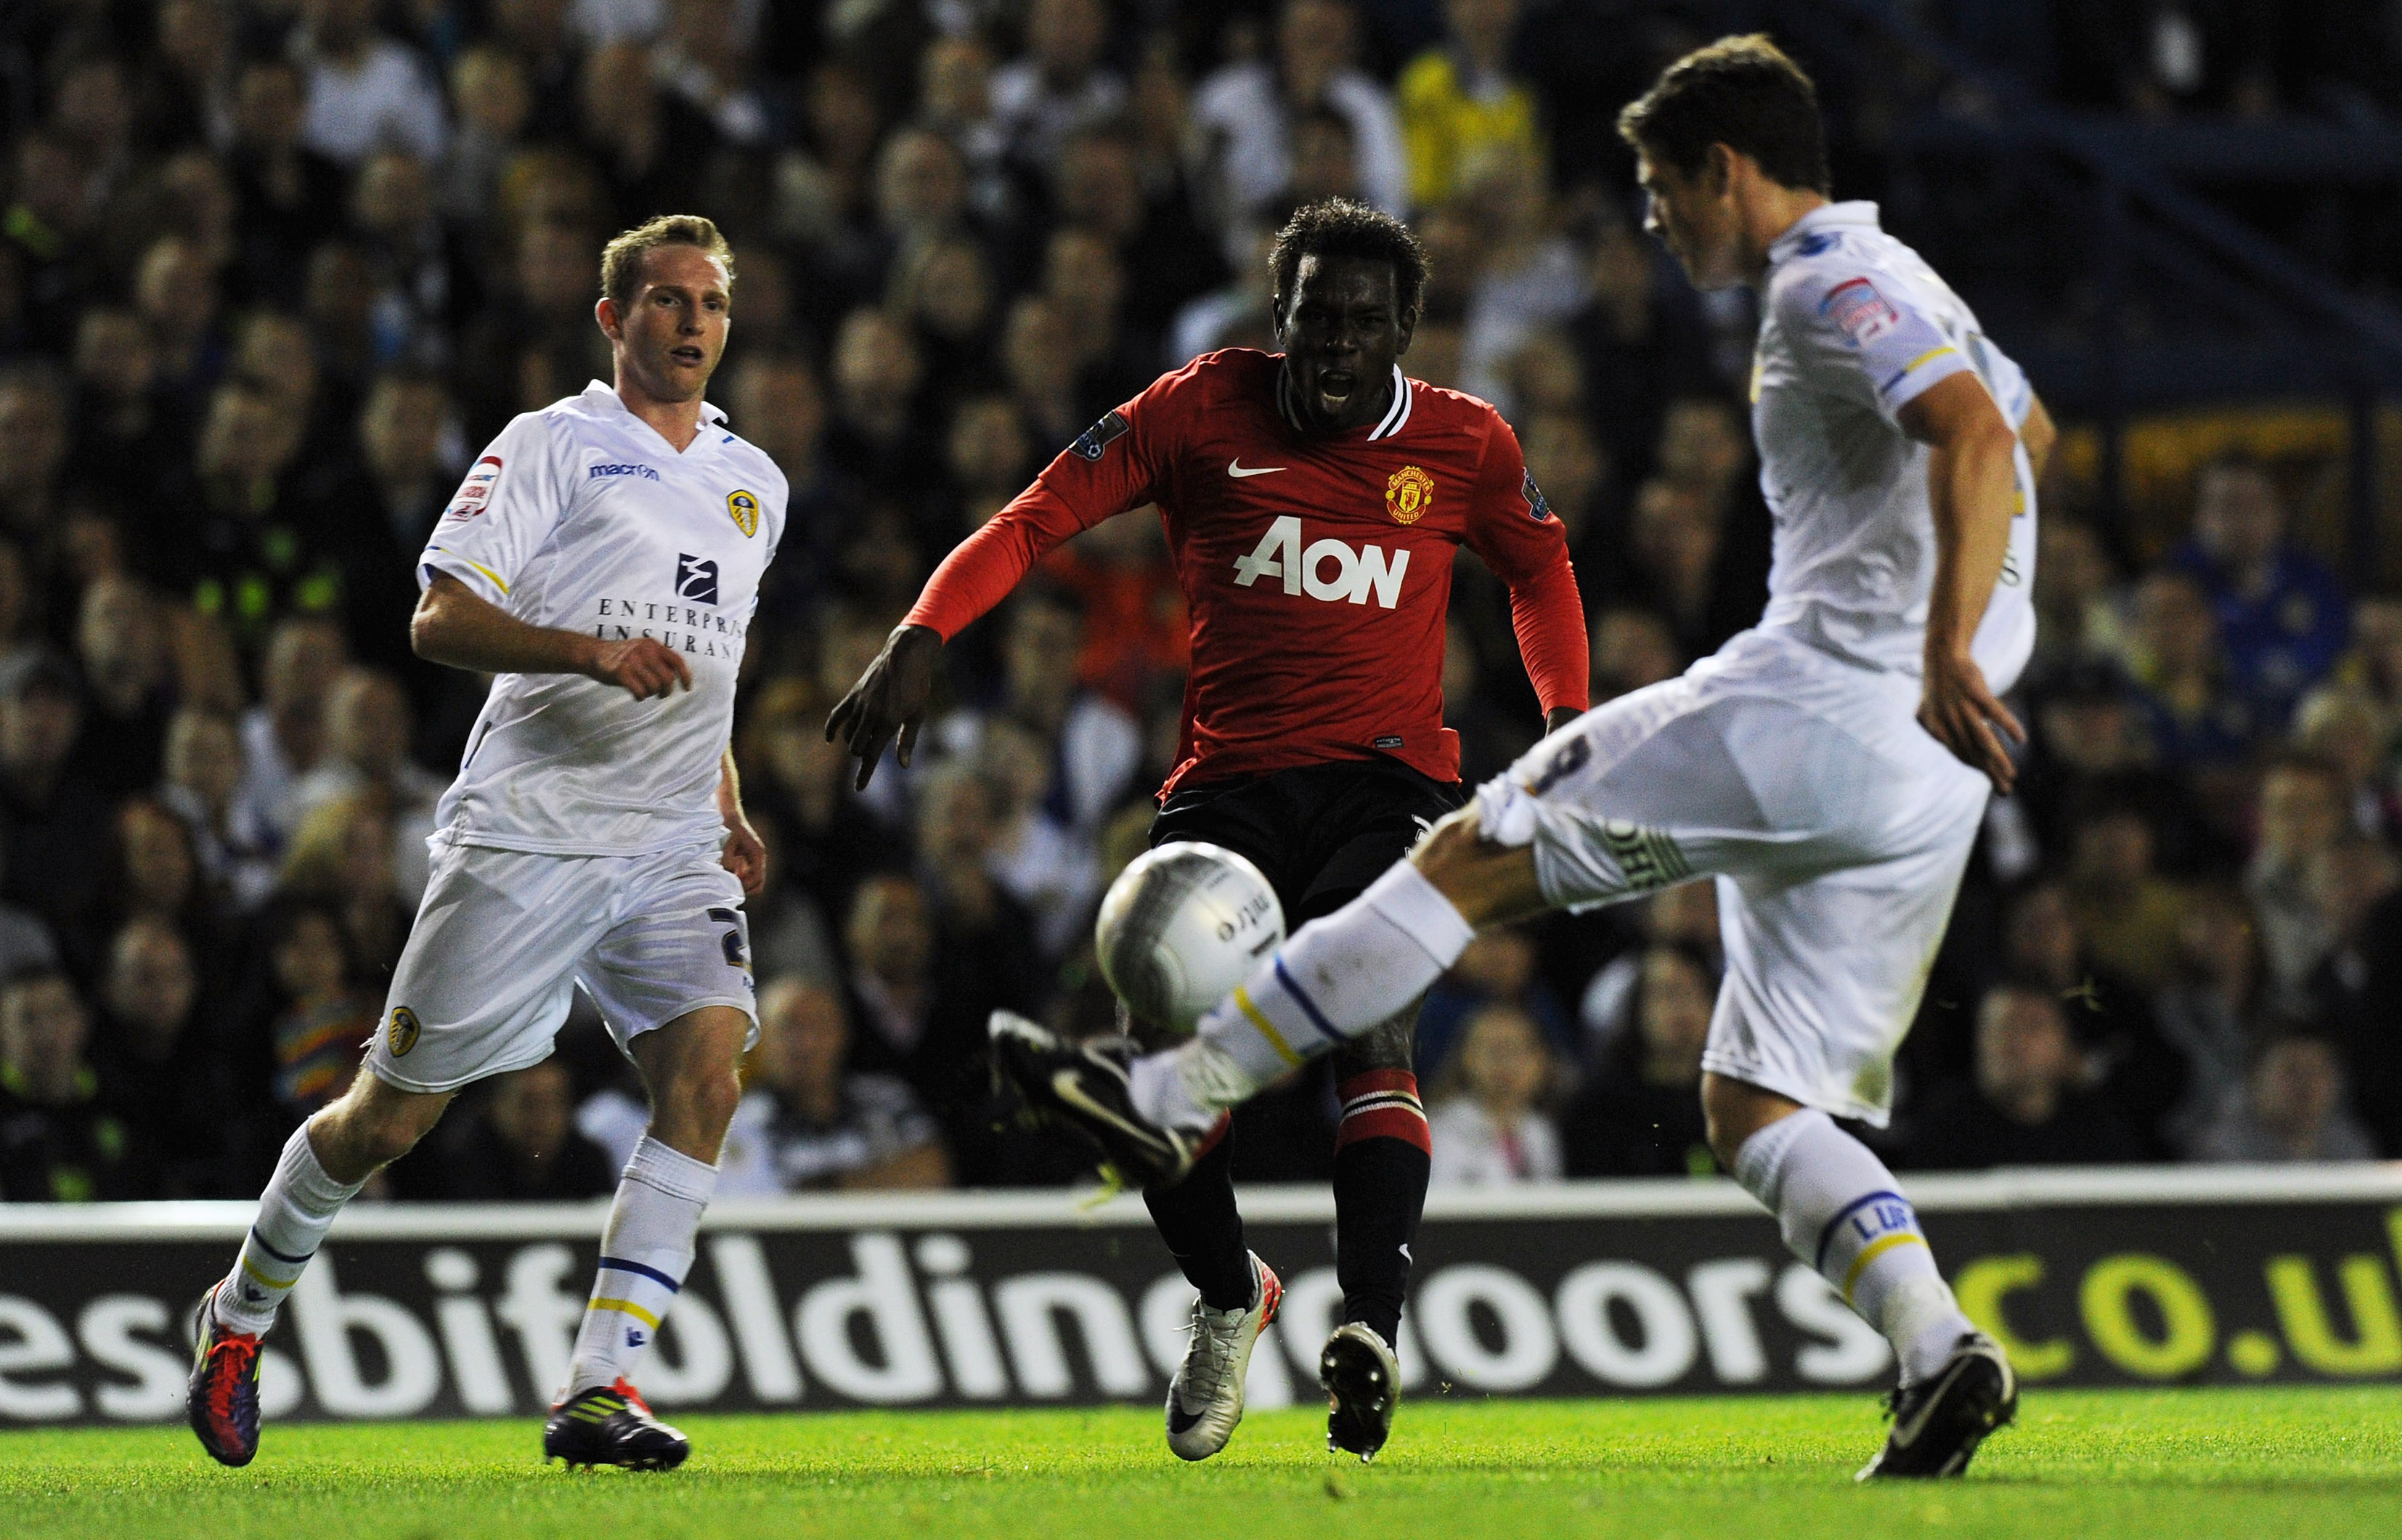 Leeds United v Manchester United - Carling Cup Third Round